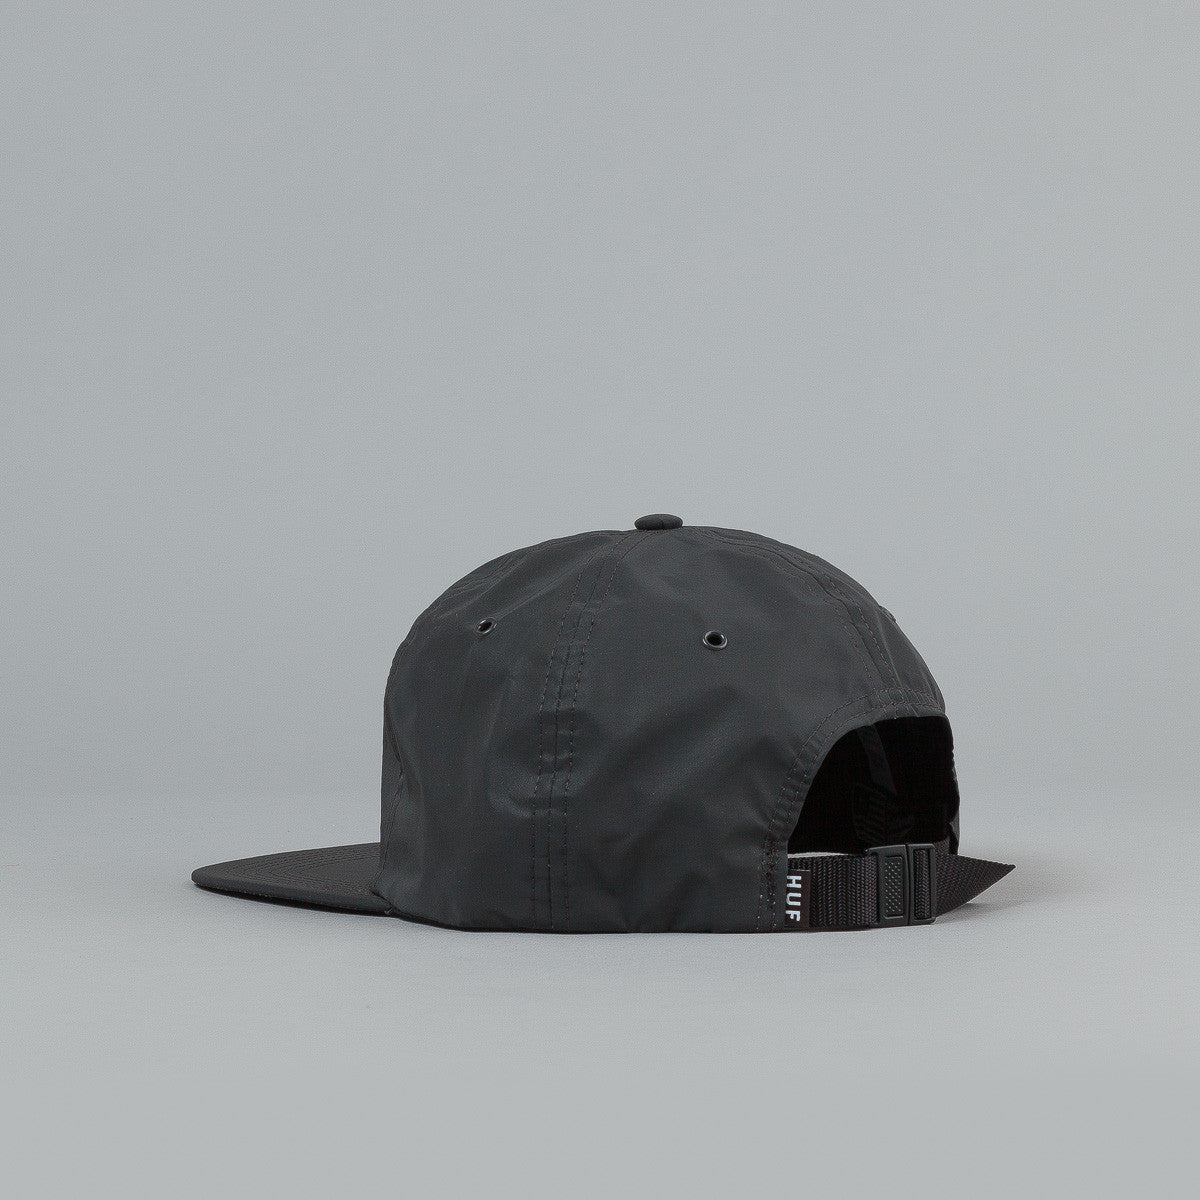 HUF x Bronze 56k Reflective Vintage 6 Panel Cap - Black